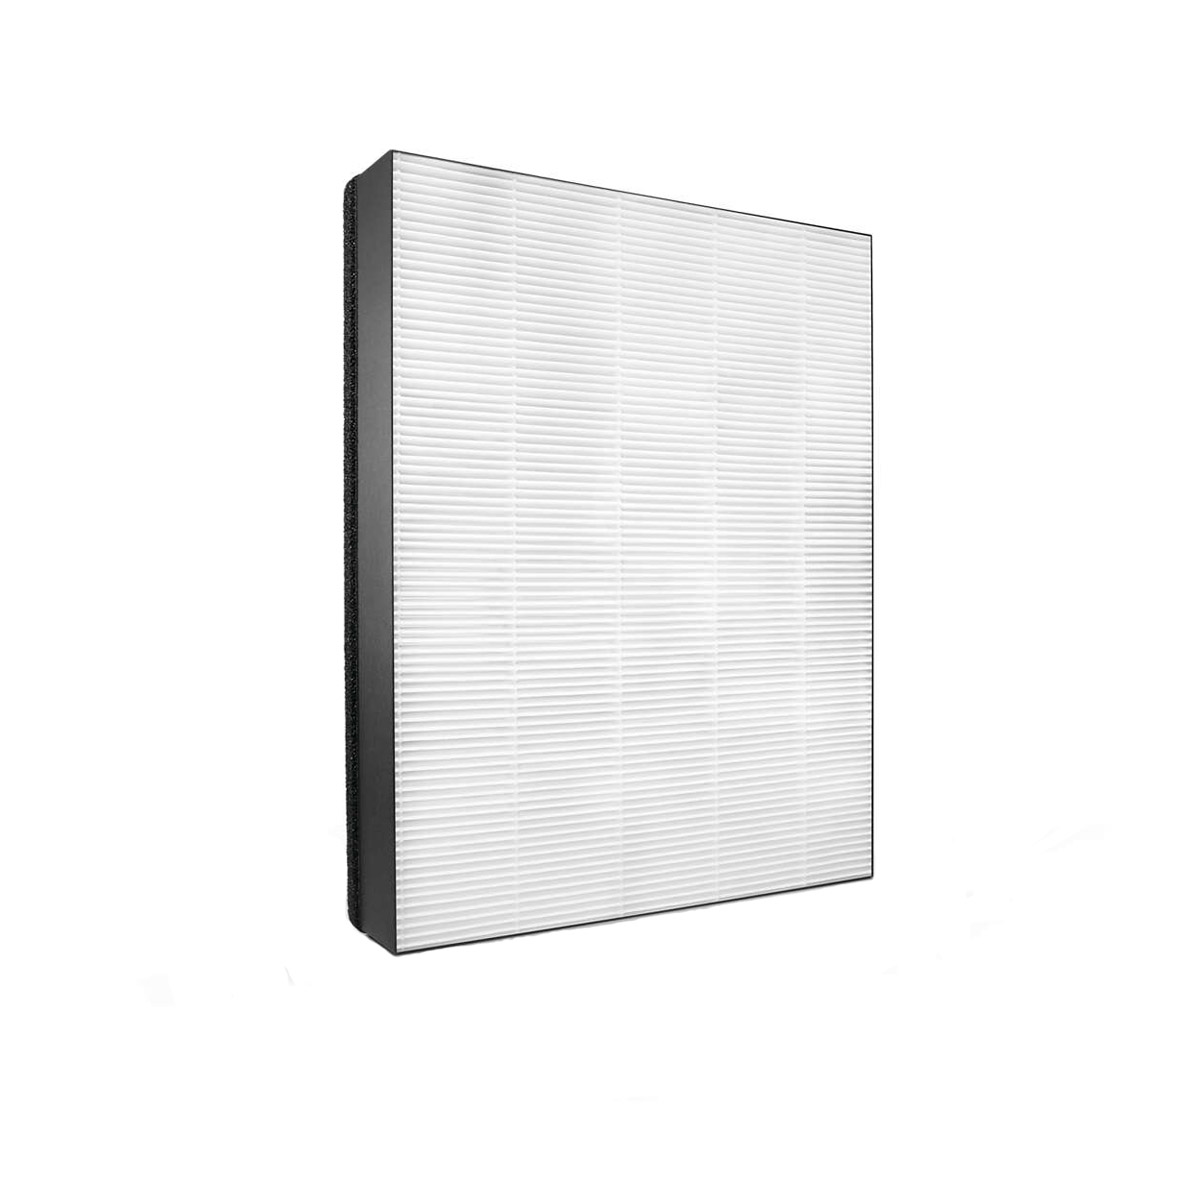 Philips NanoProtect HEPA Series 2000 Replacement Filter